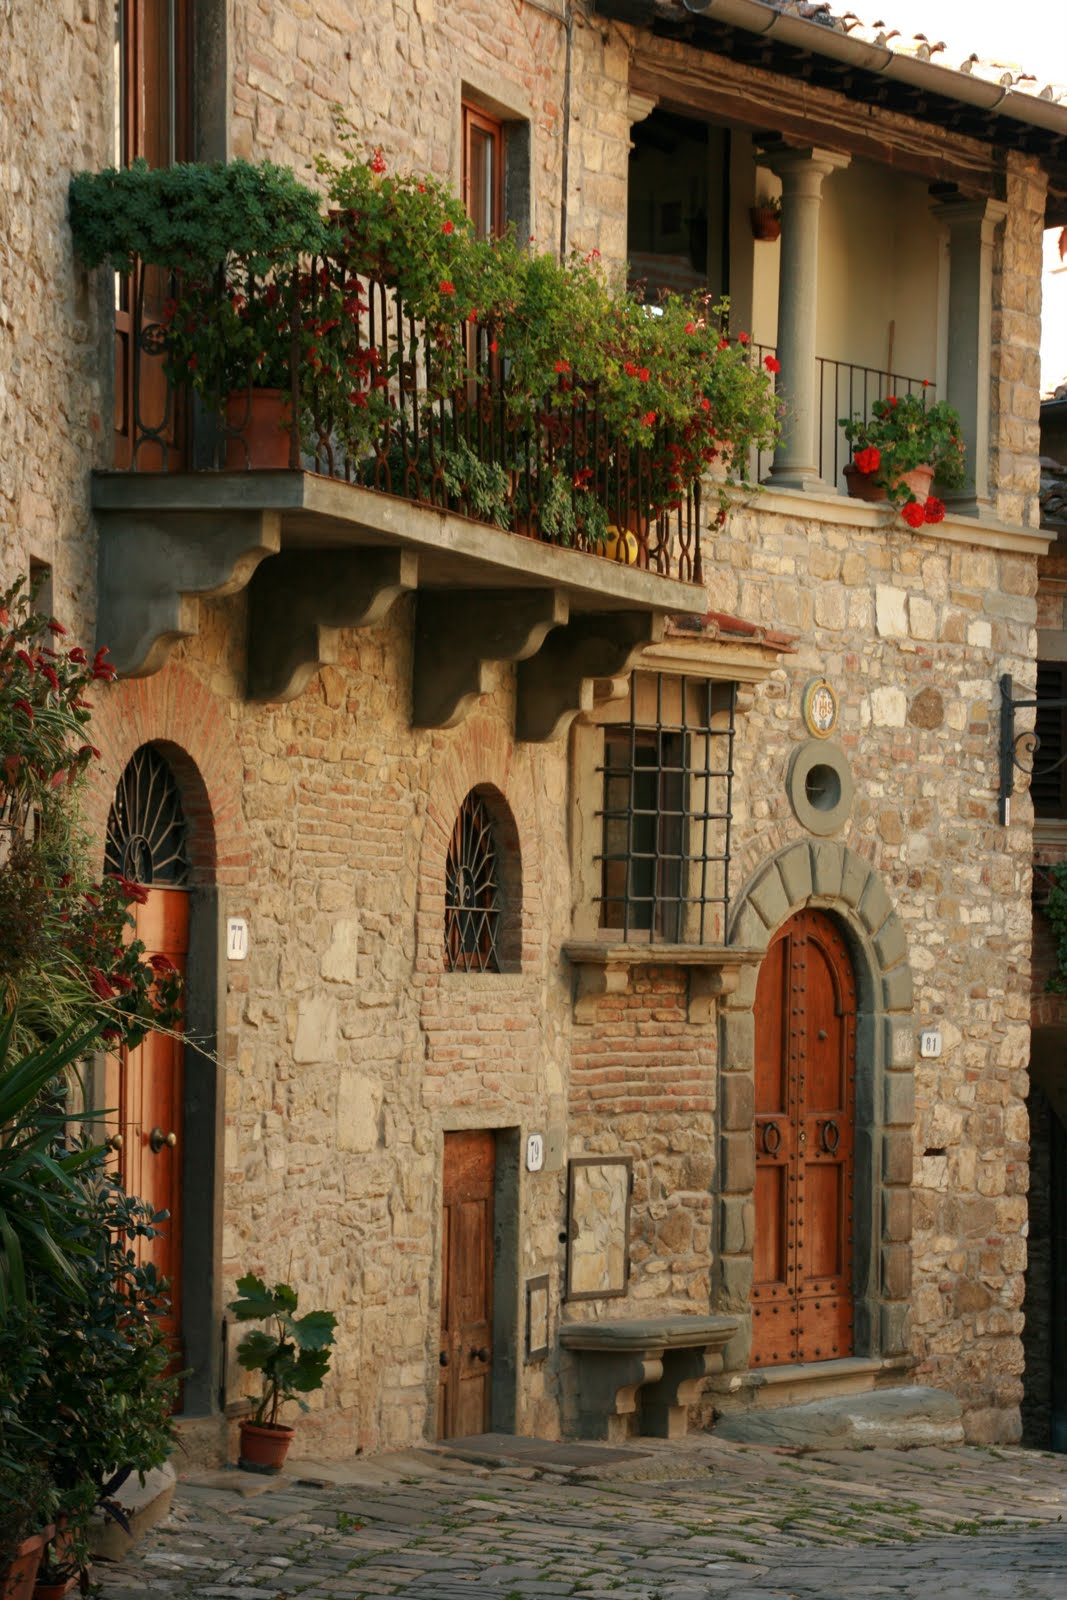 Home of stone rome villa inspiration in stone walls for 1 homes in italy